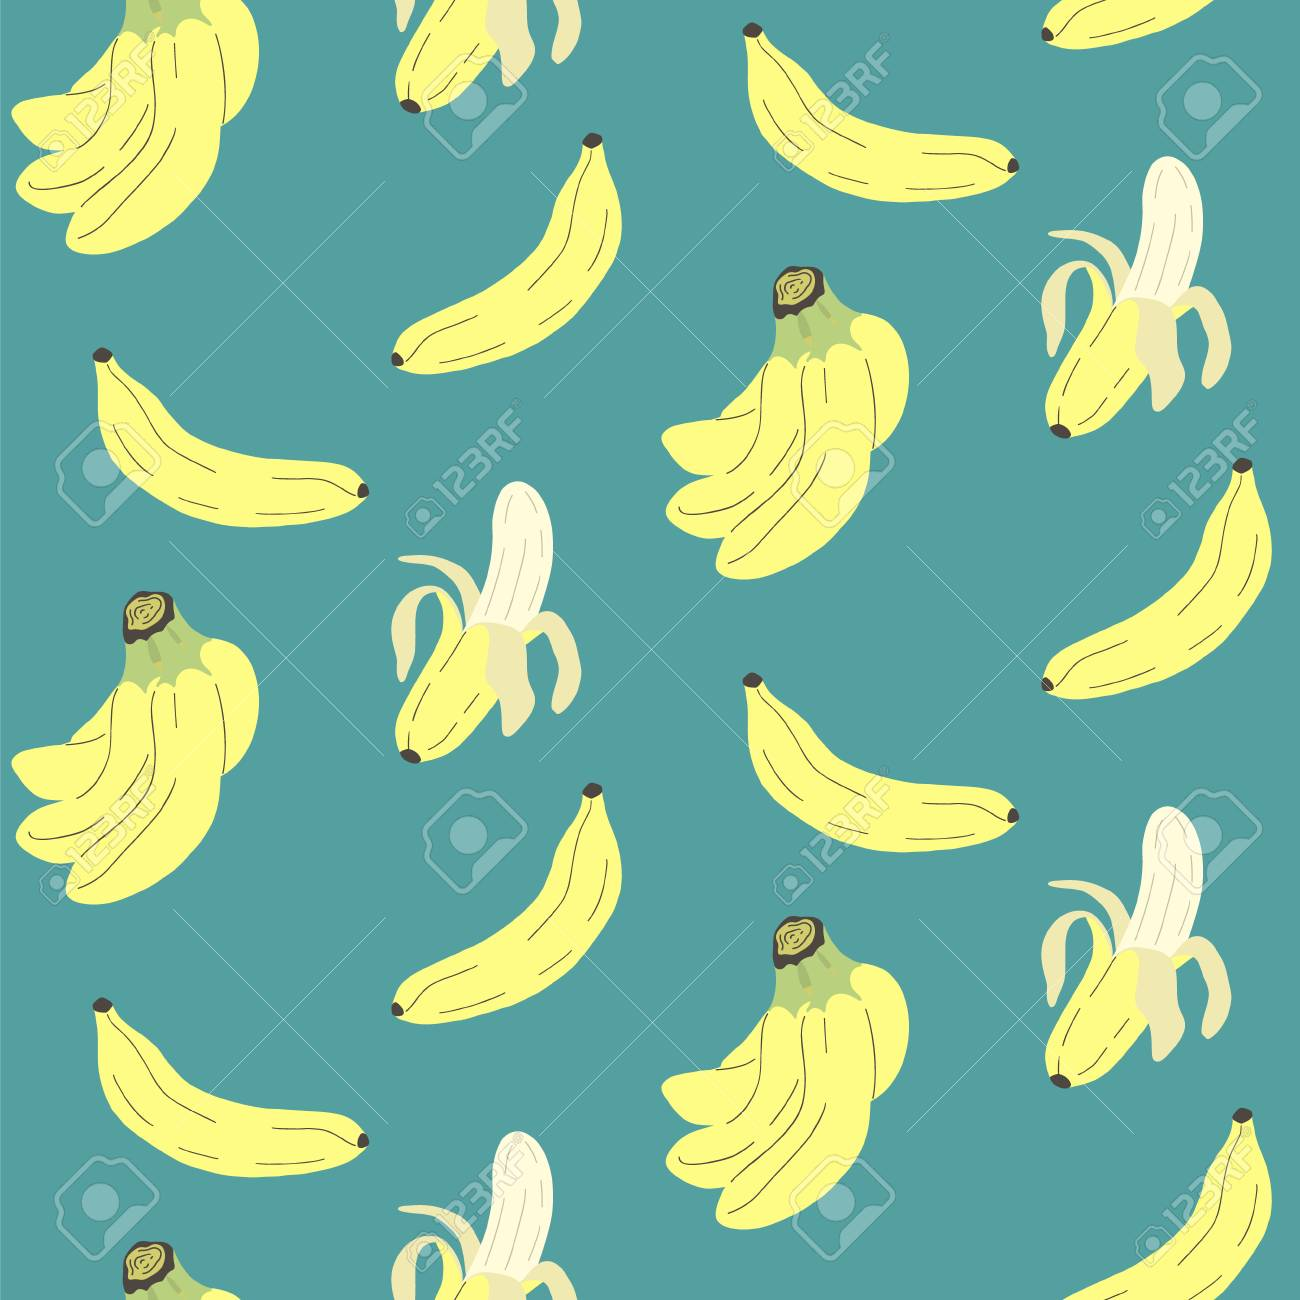 Cute Seamless Pattern With Banana Print For Textile Wrapping